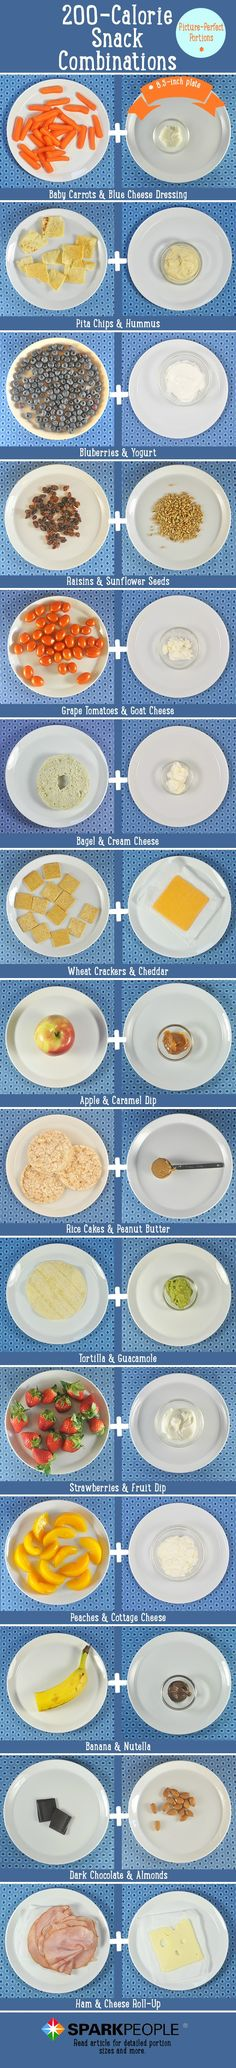 What does a 200-calorie #snack really look like? Awesome visual that shows different 200-cal snack combos! | via @SparkPeople #healthy #healthysnack #diet #nutrition #weightloss